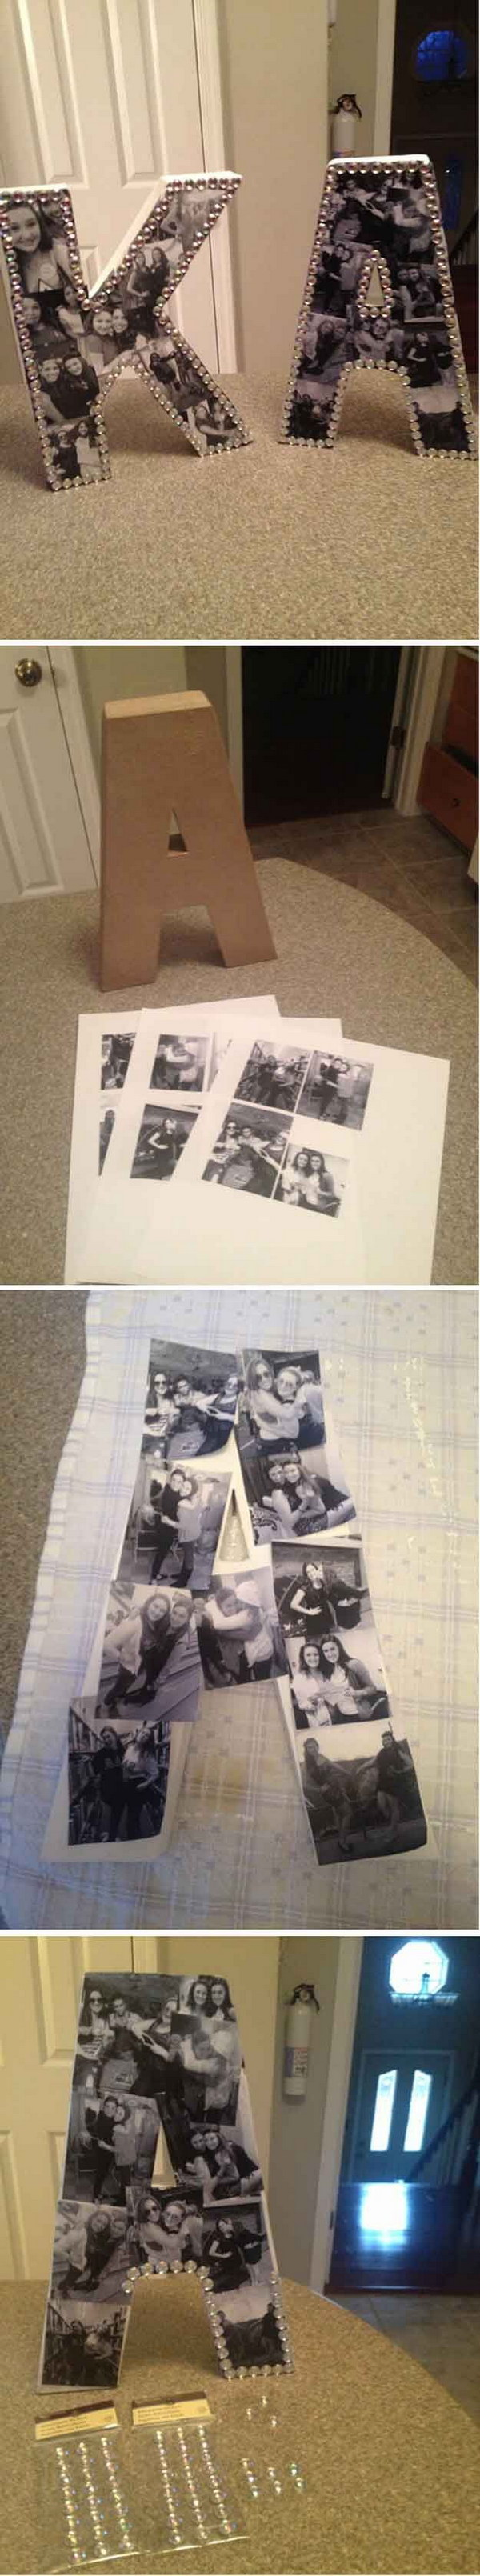 DIY Photo Collage Letters Gift.